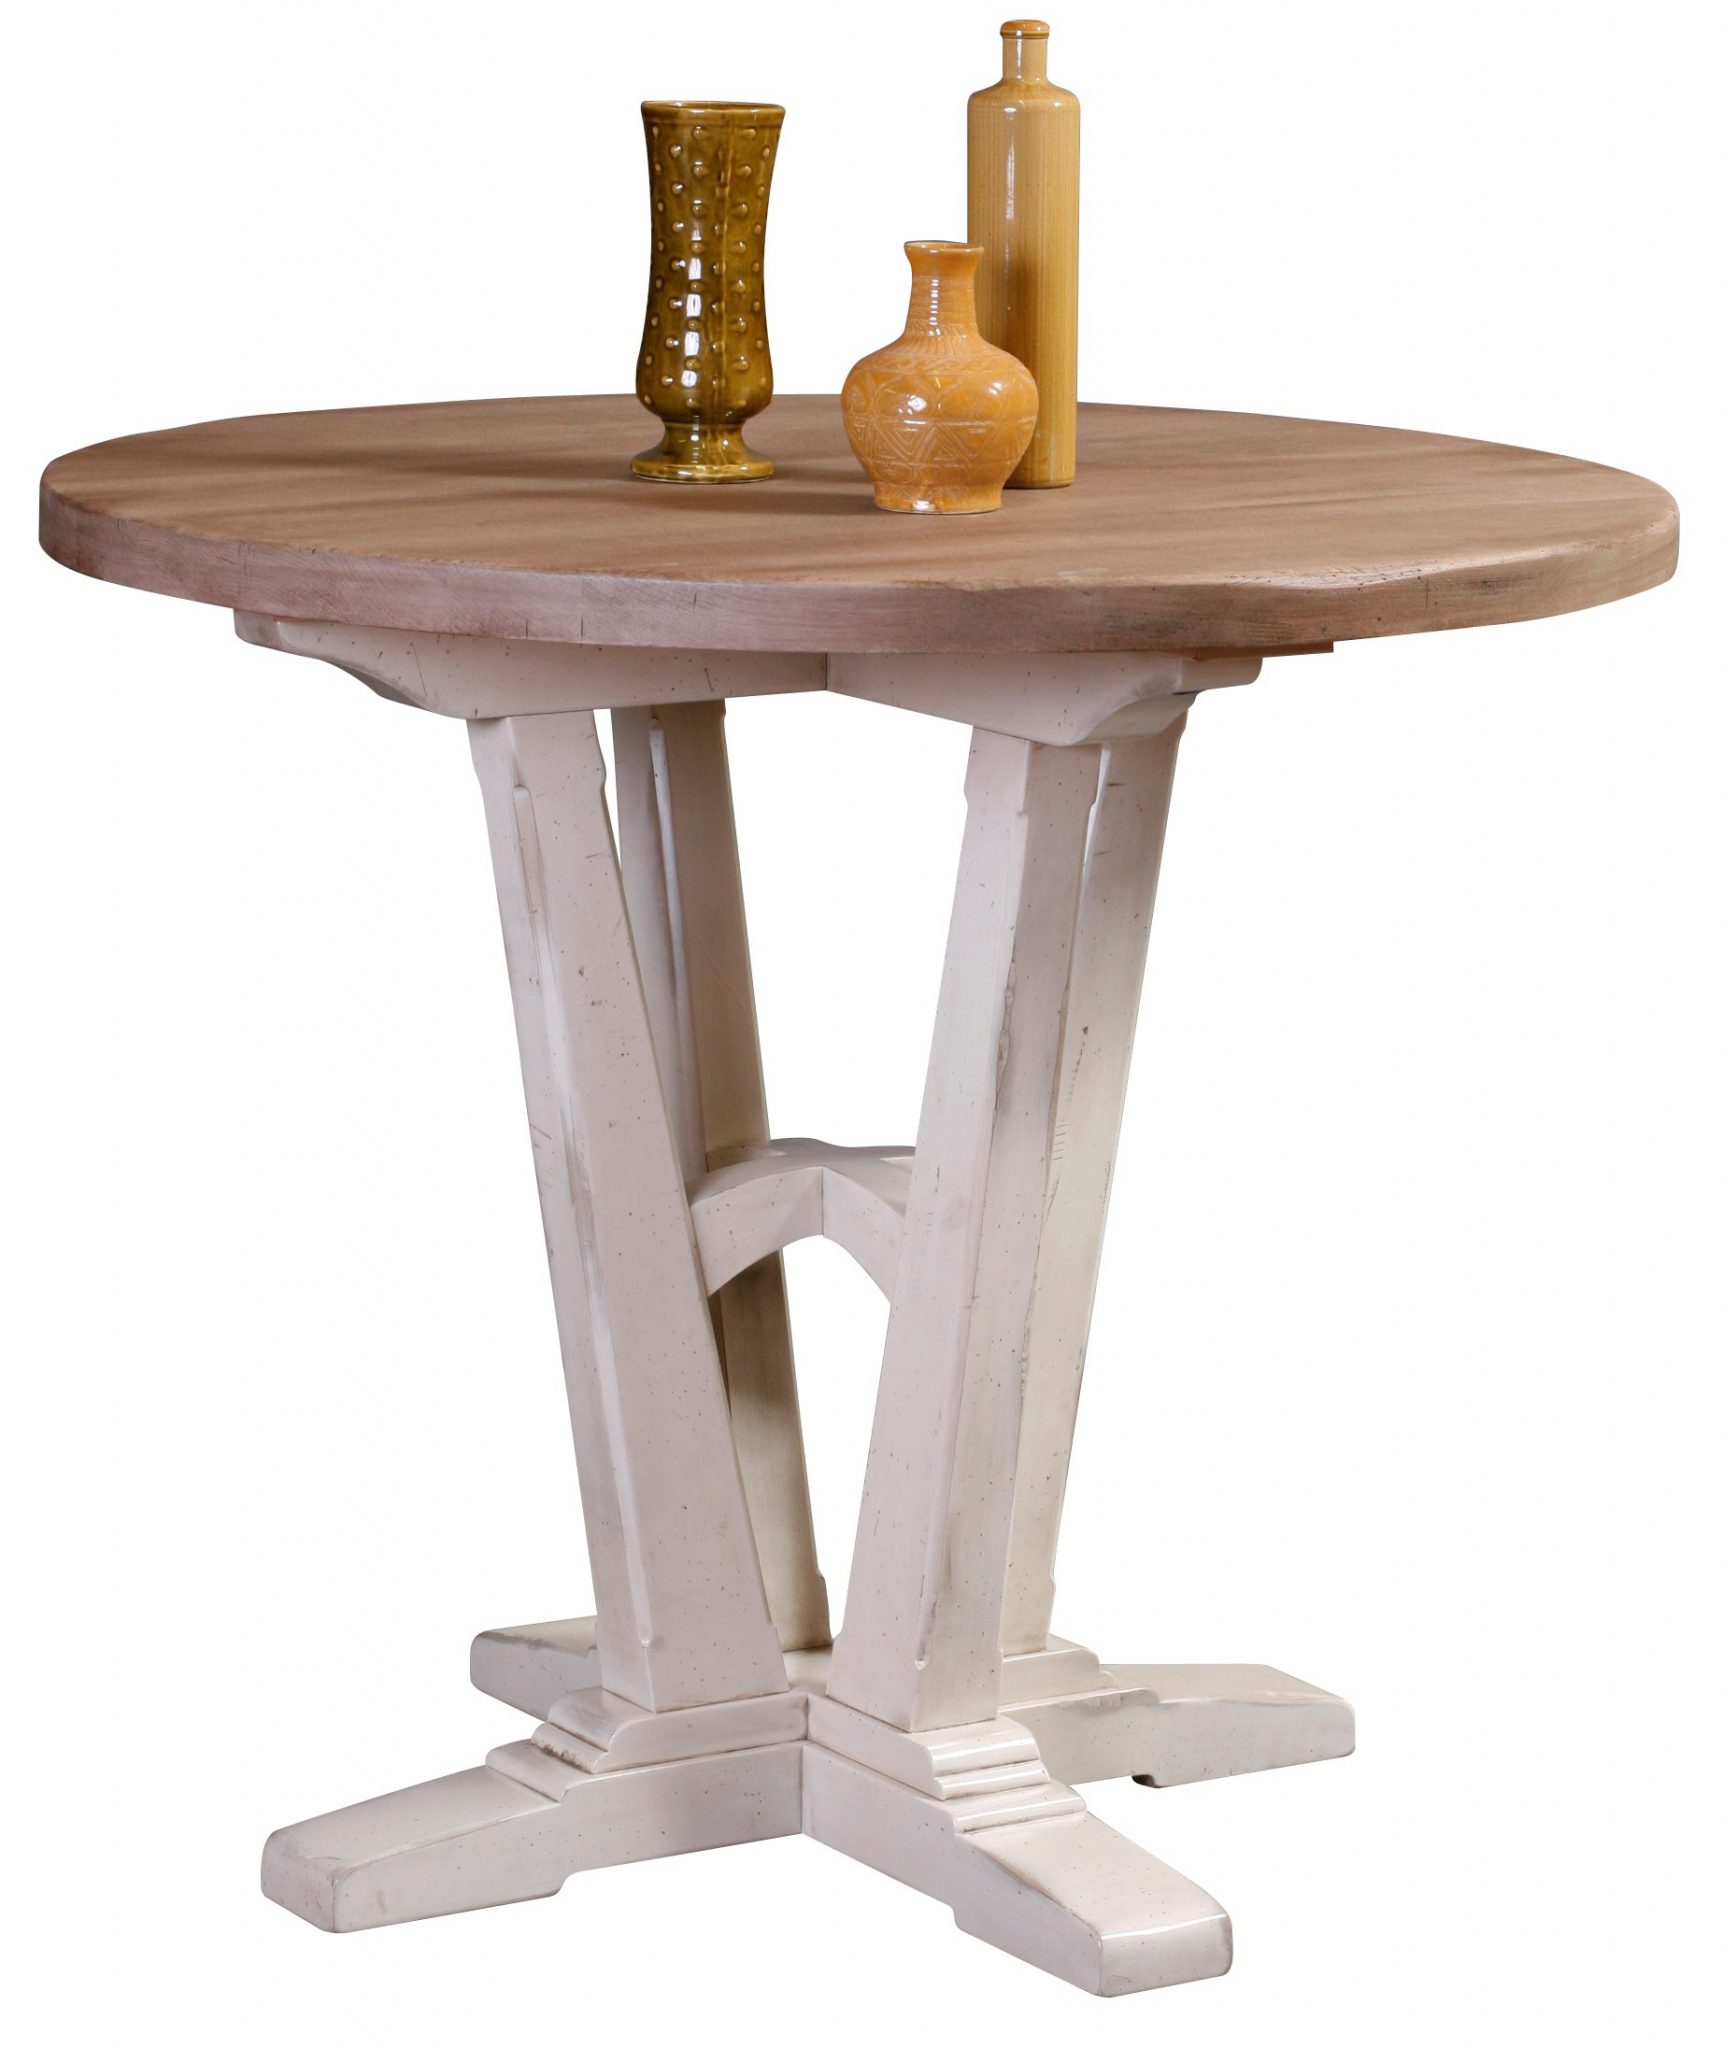 Counter or Bar Height Basil Table Image